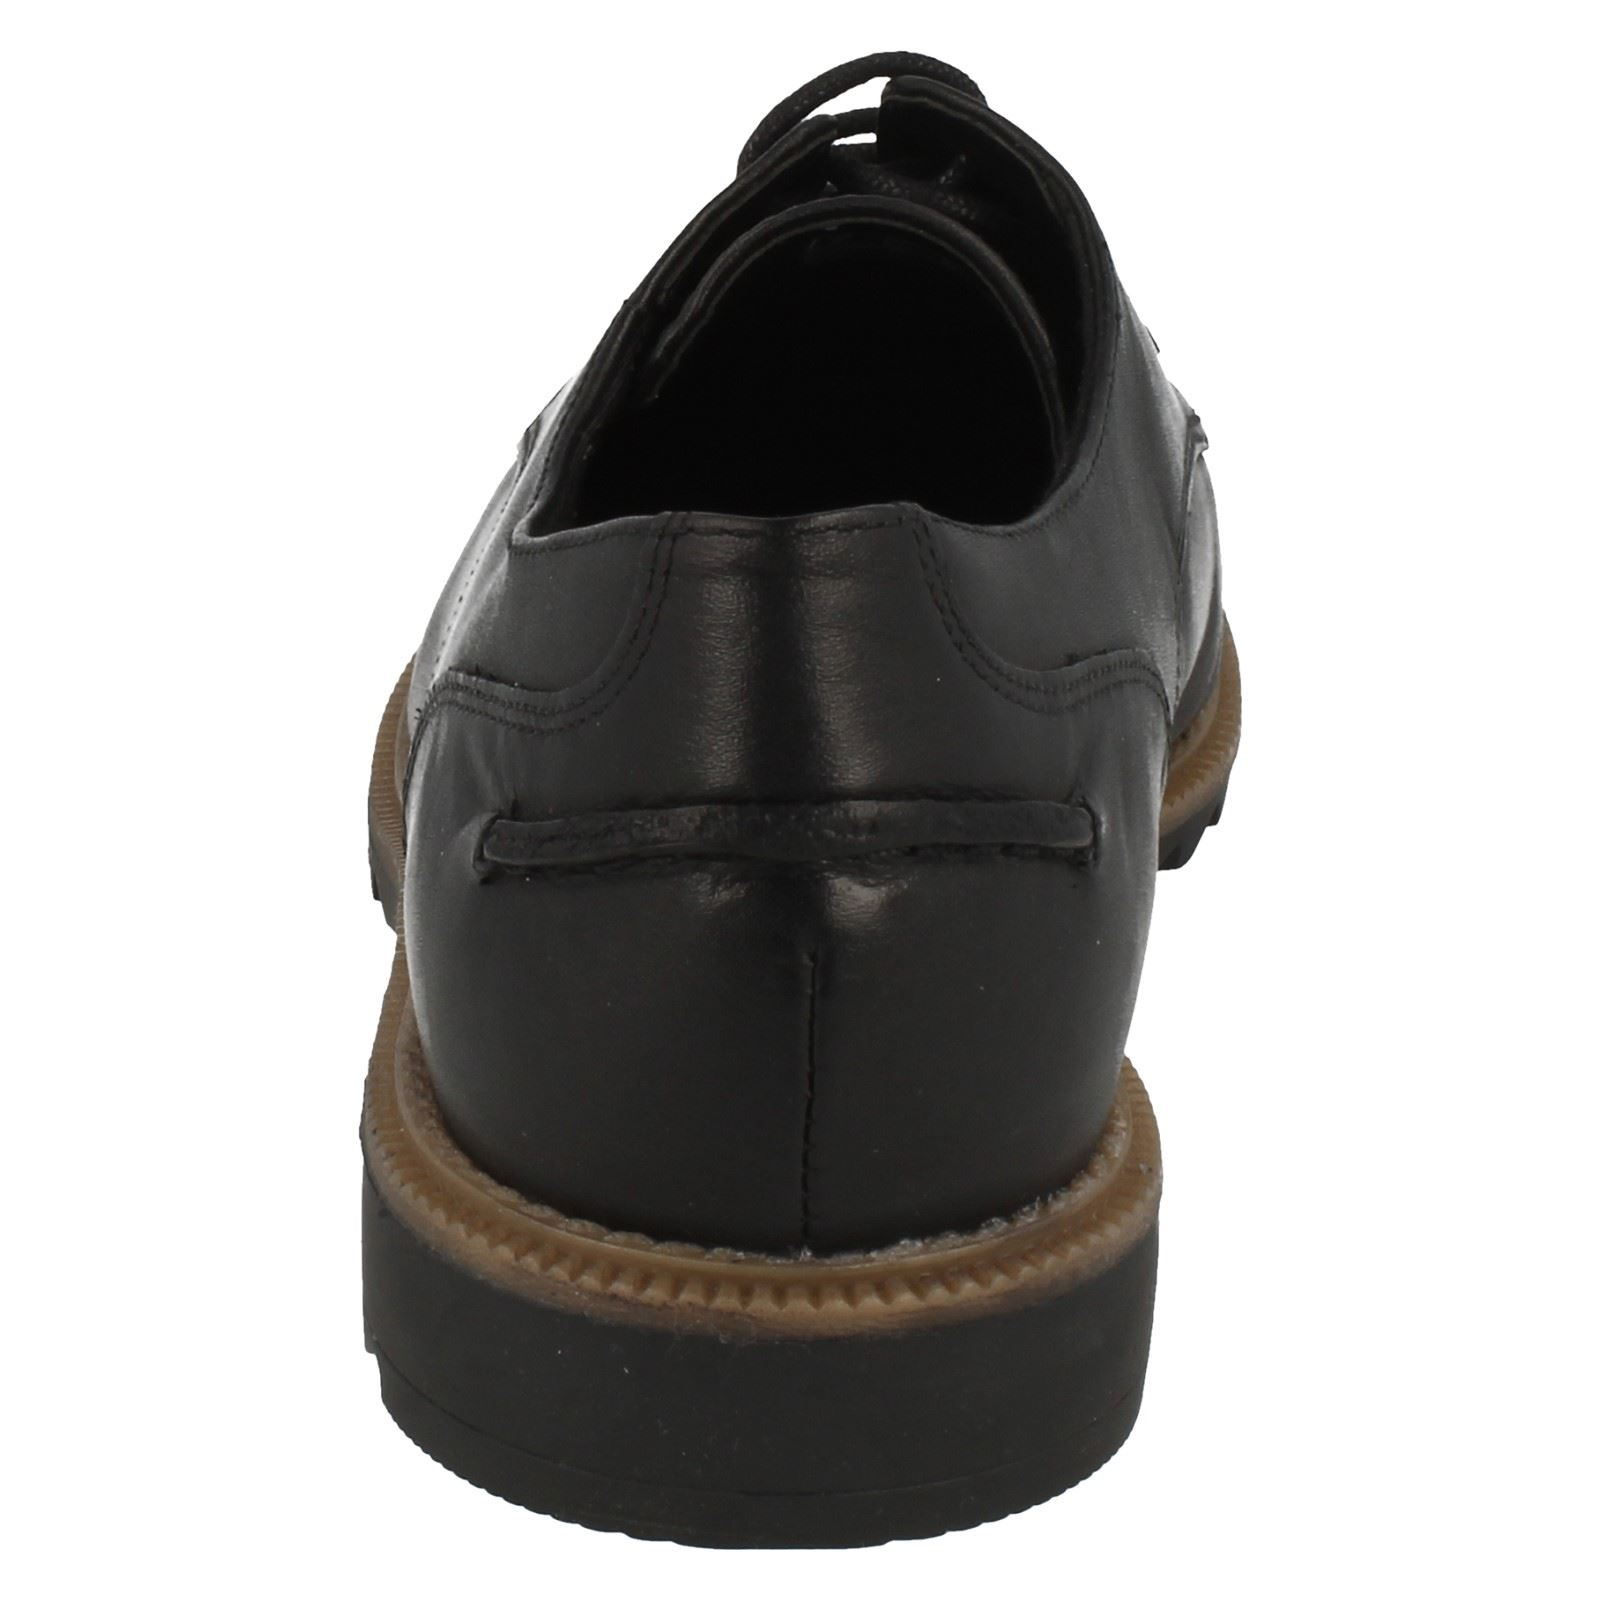 Ladies Clarks Smart Lace Up Shoes Griffin Mabel